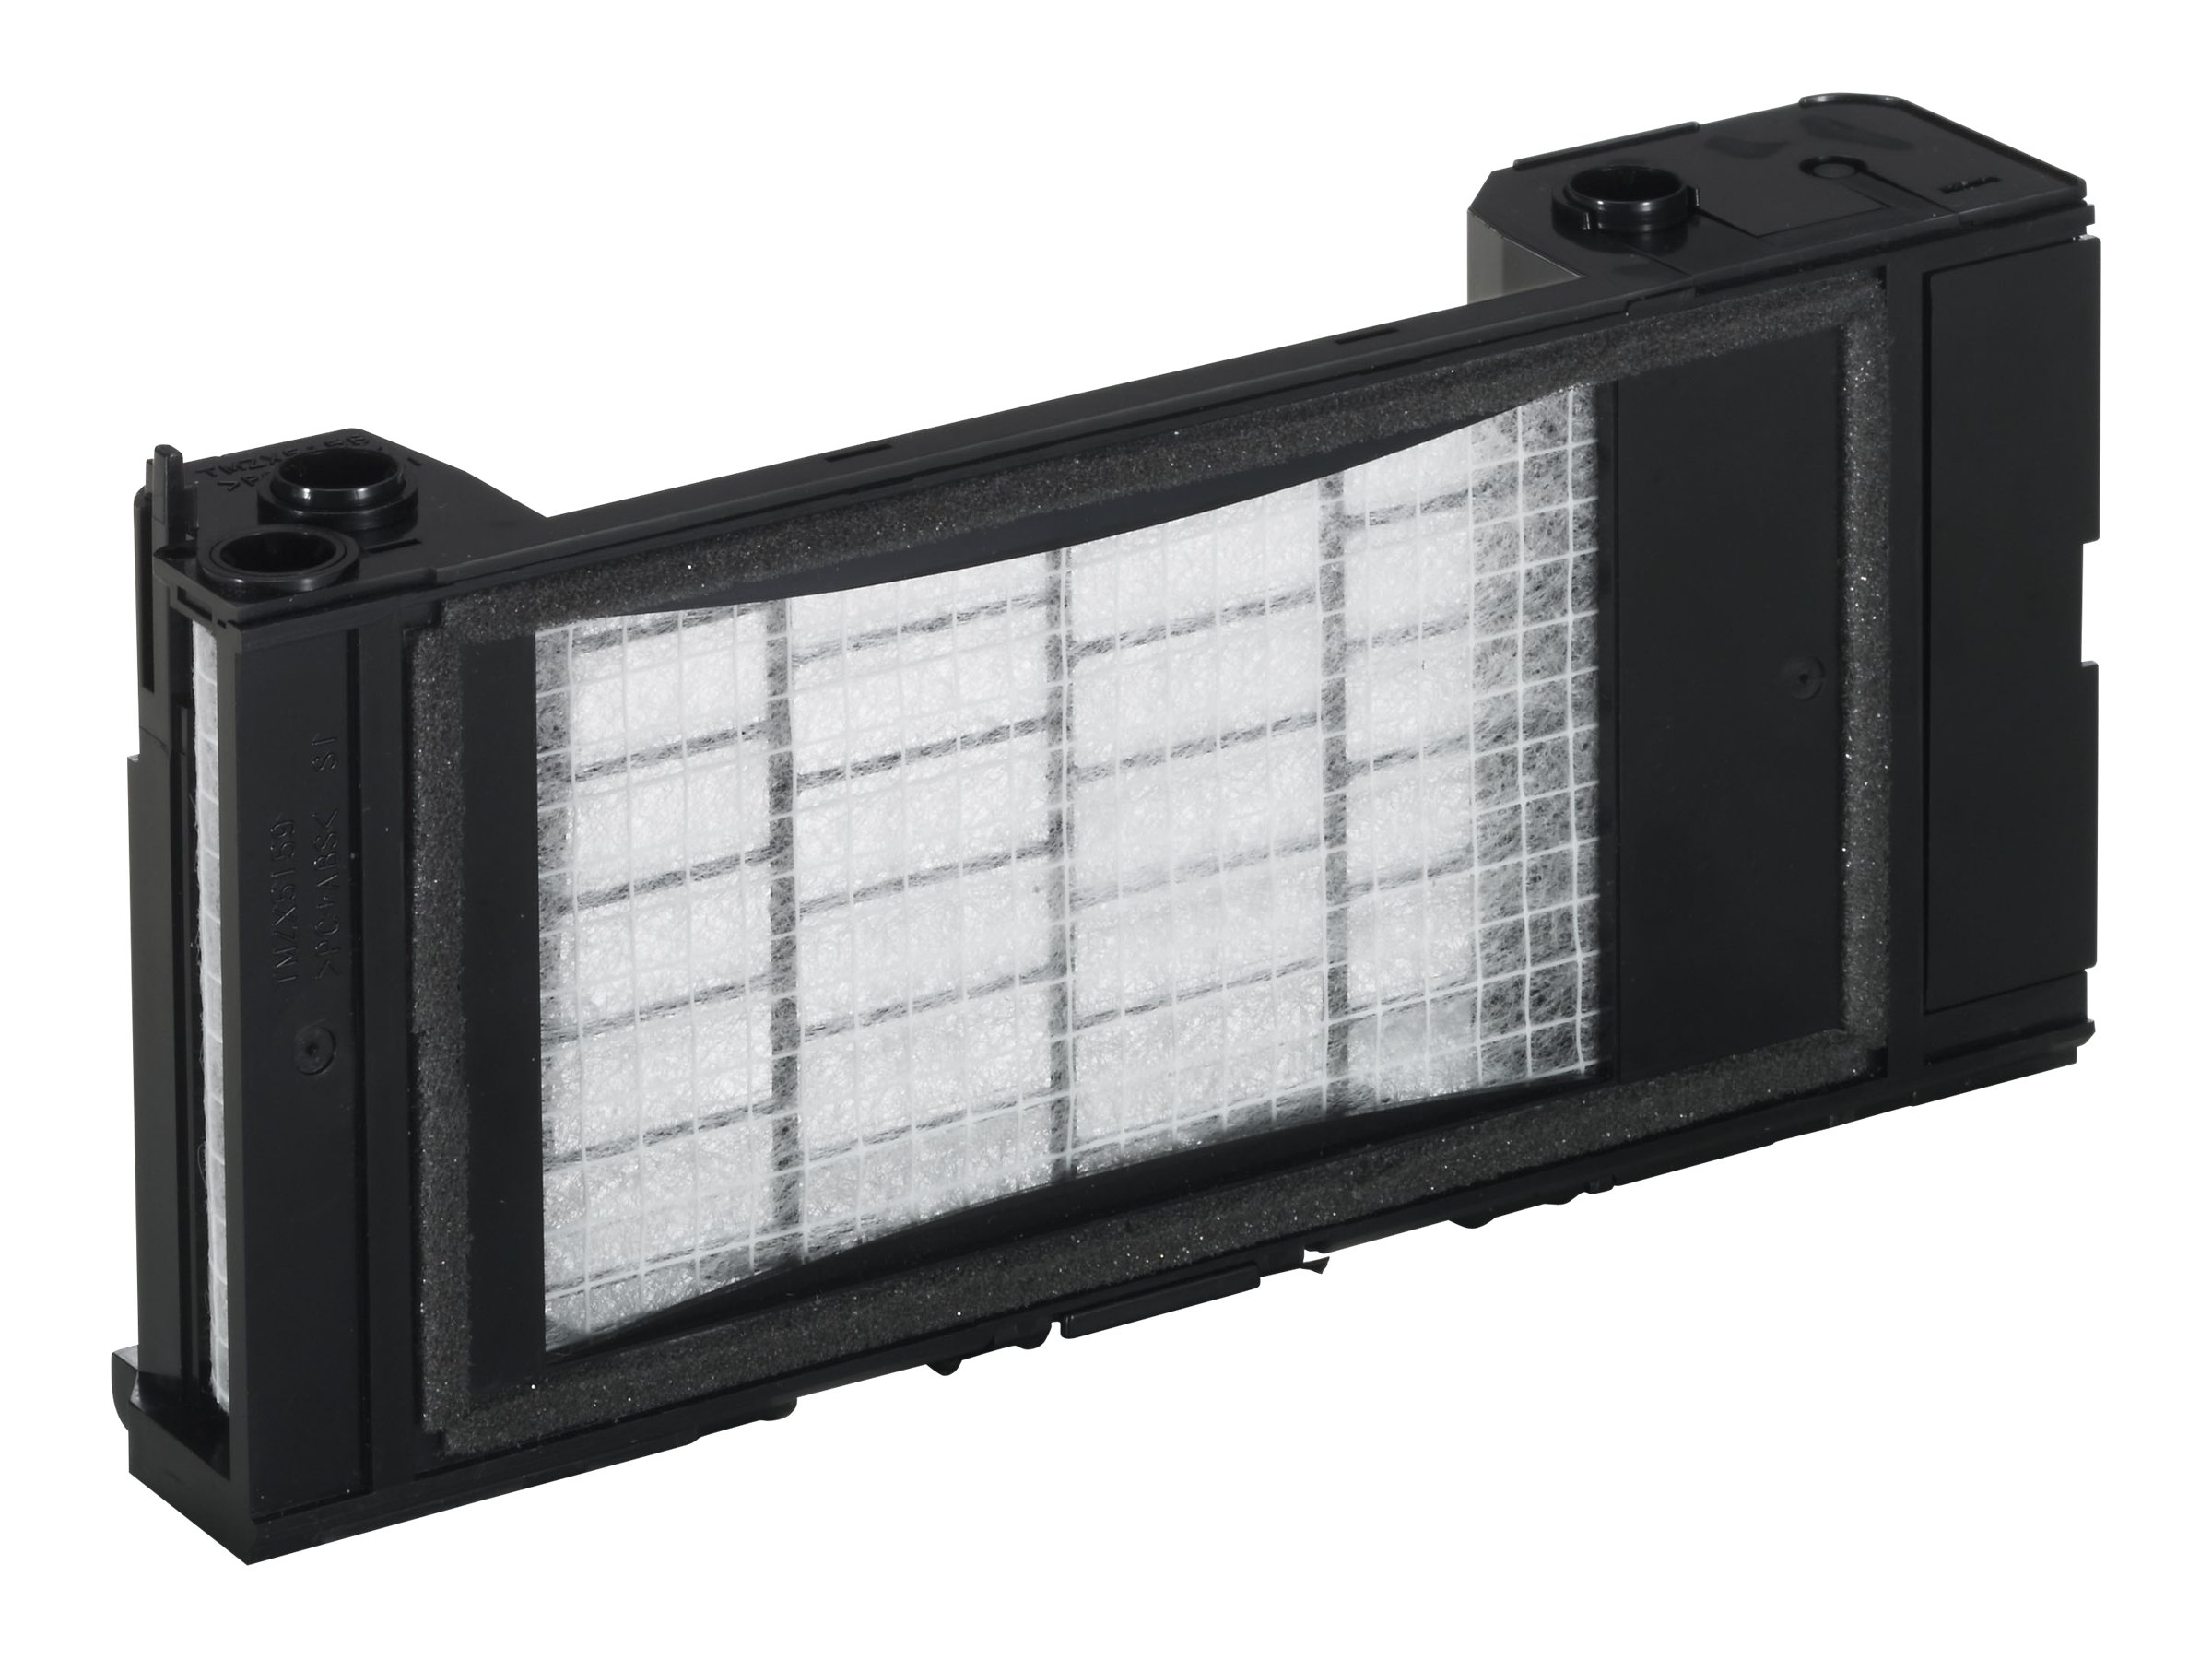 Panasonic Replacement Auto-Cleaning Air Filter for F300 Series Projectors